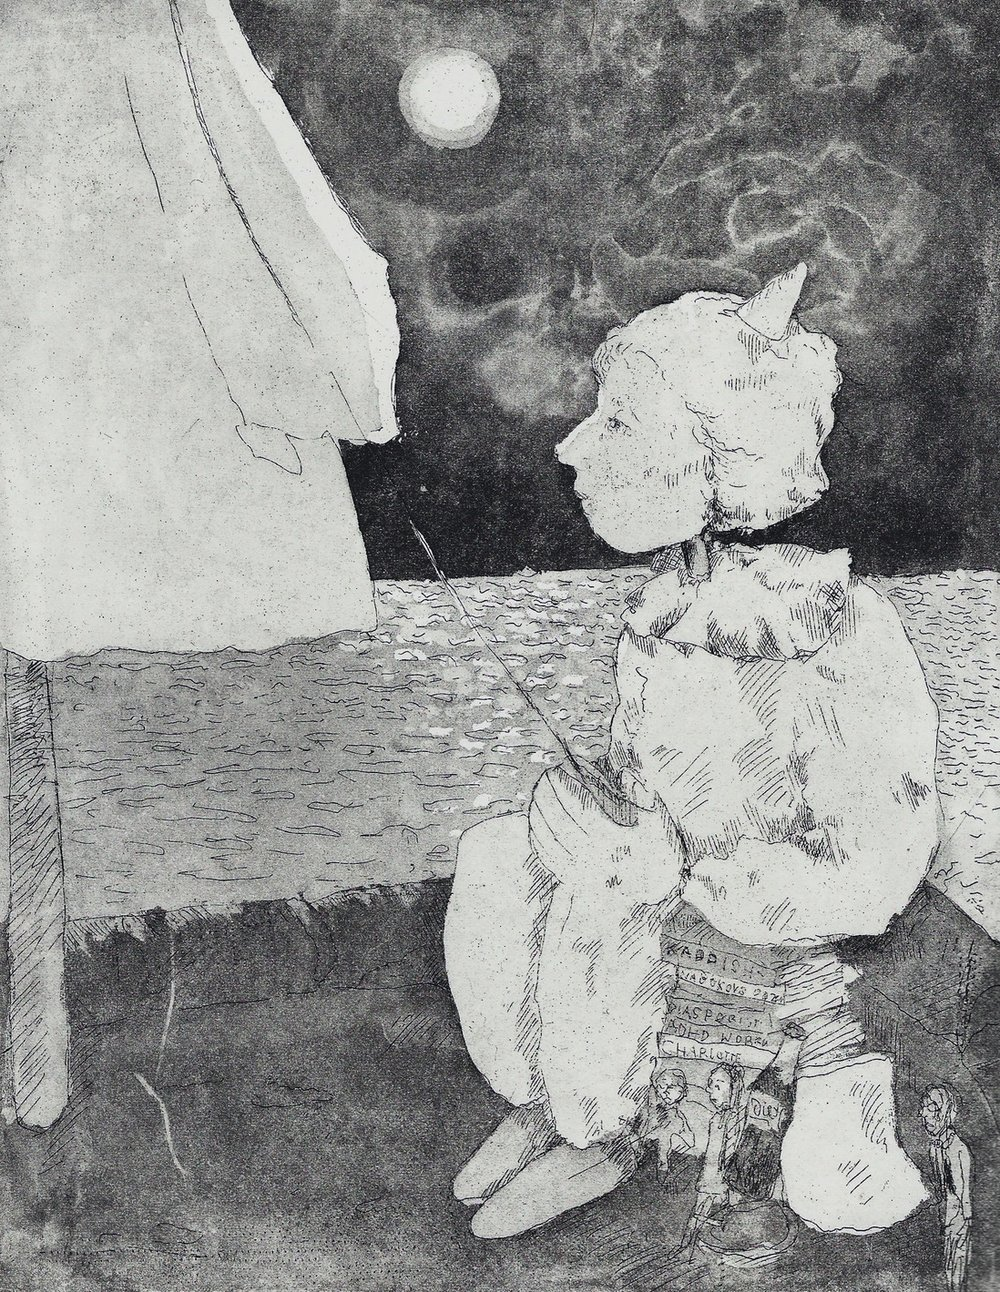 Liorah Tchiprout,  I tried to sail to your nightboat to sorrow, but got lost somewhere,  2018, etching